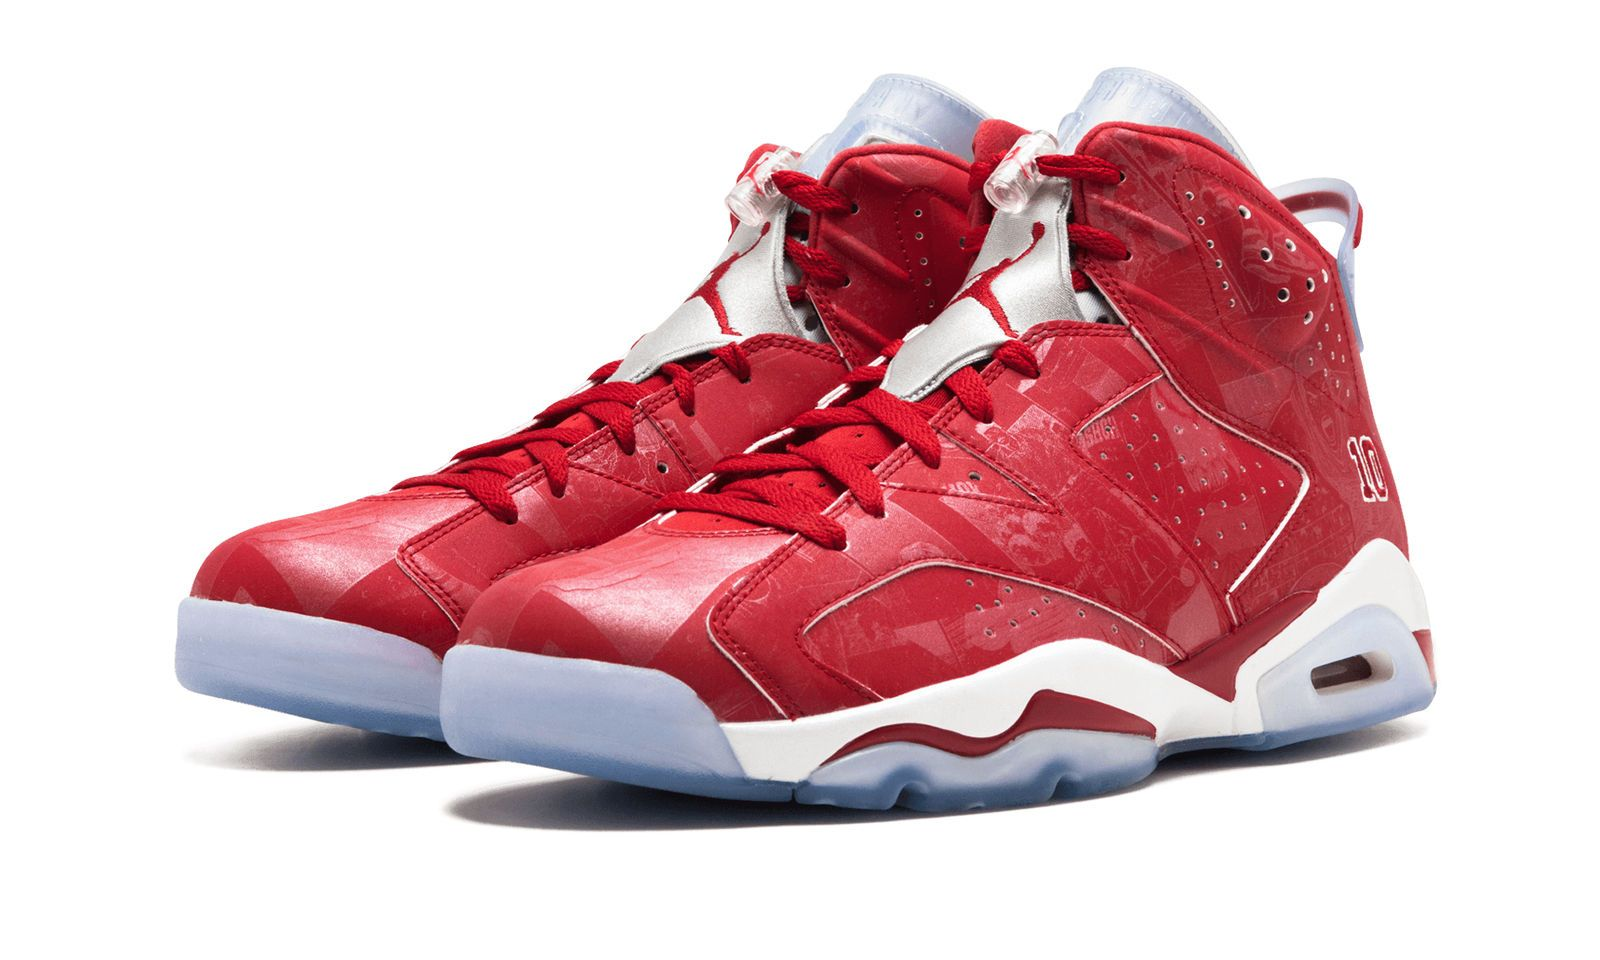 447a83300ce2f2 Details about Air Jordan 6 Retro VI X Slam Dunk Size 8.5 Varsity Red ...